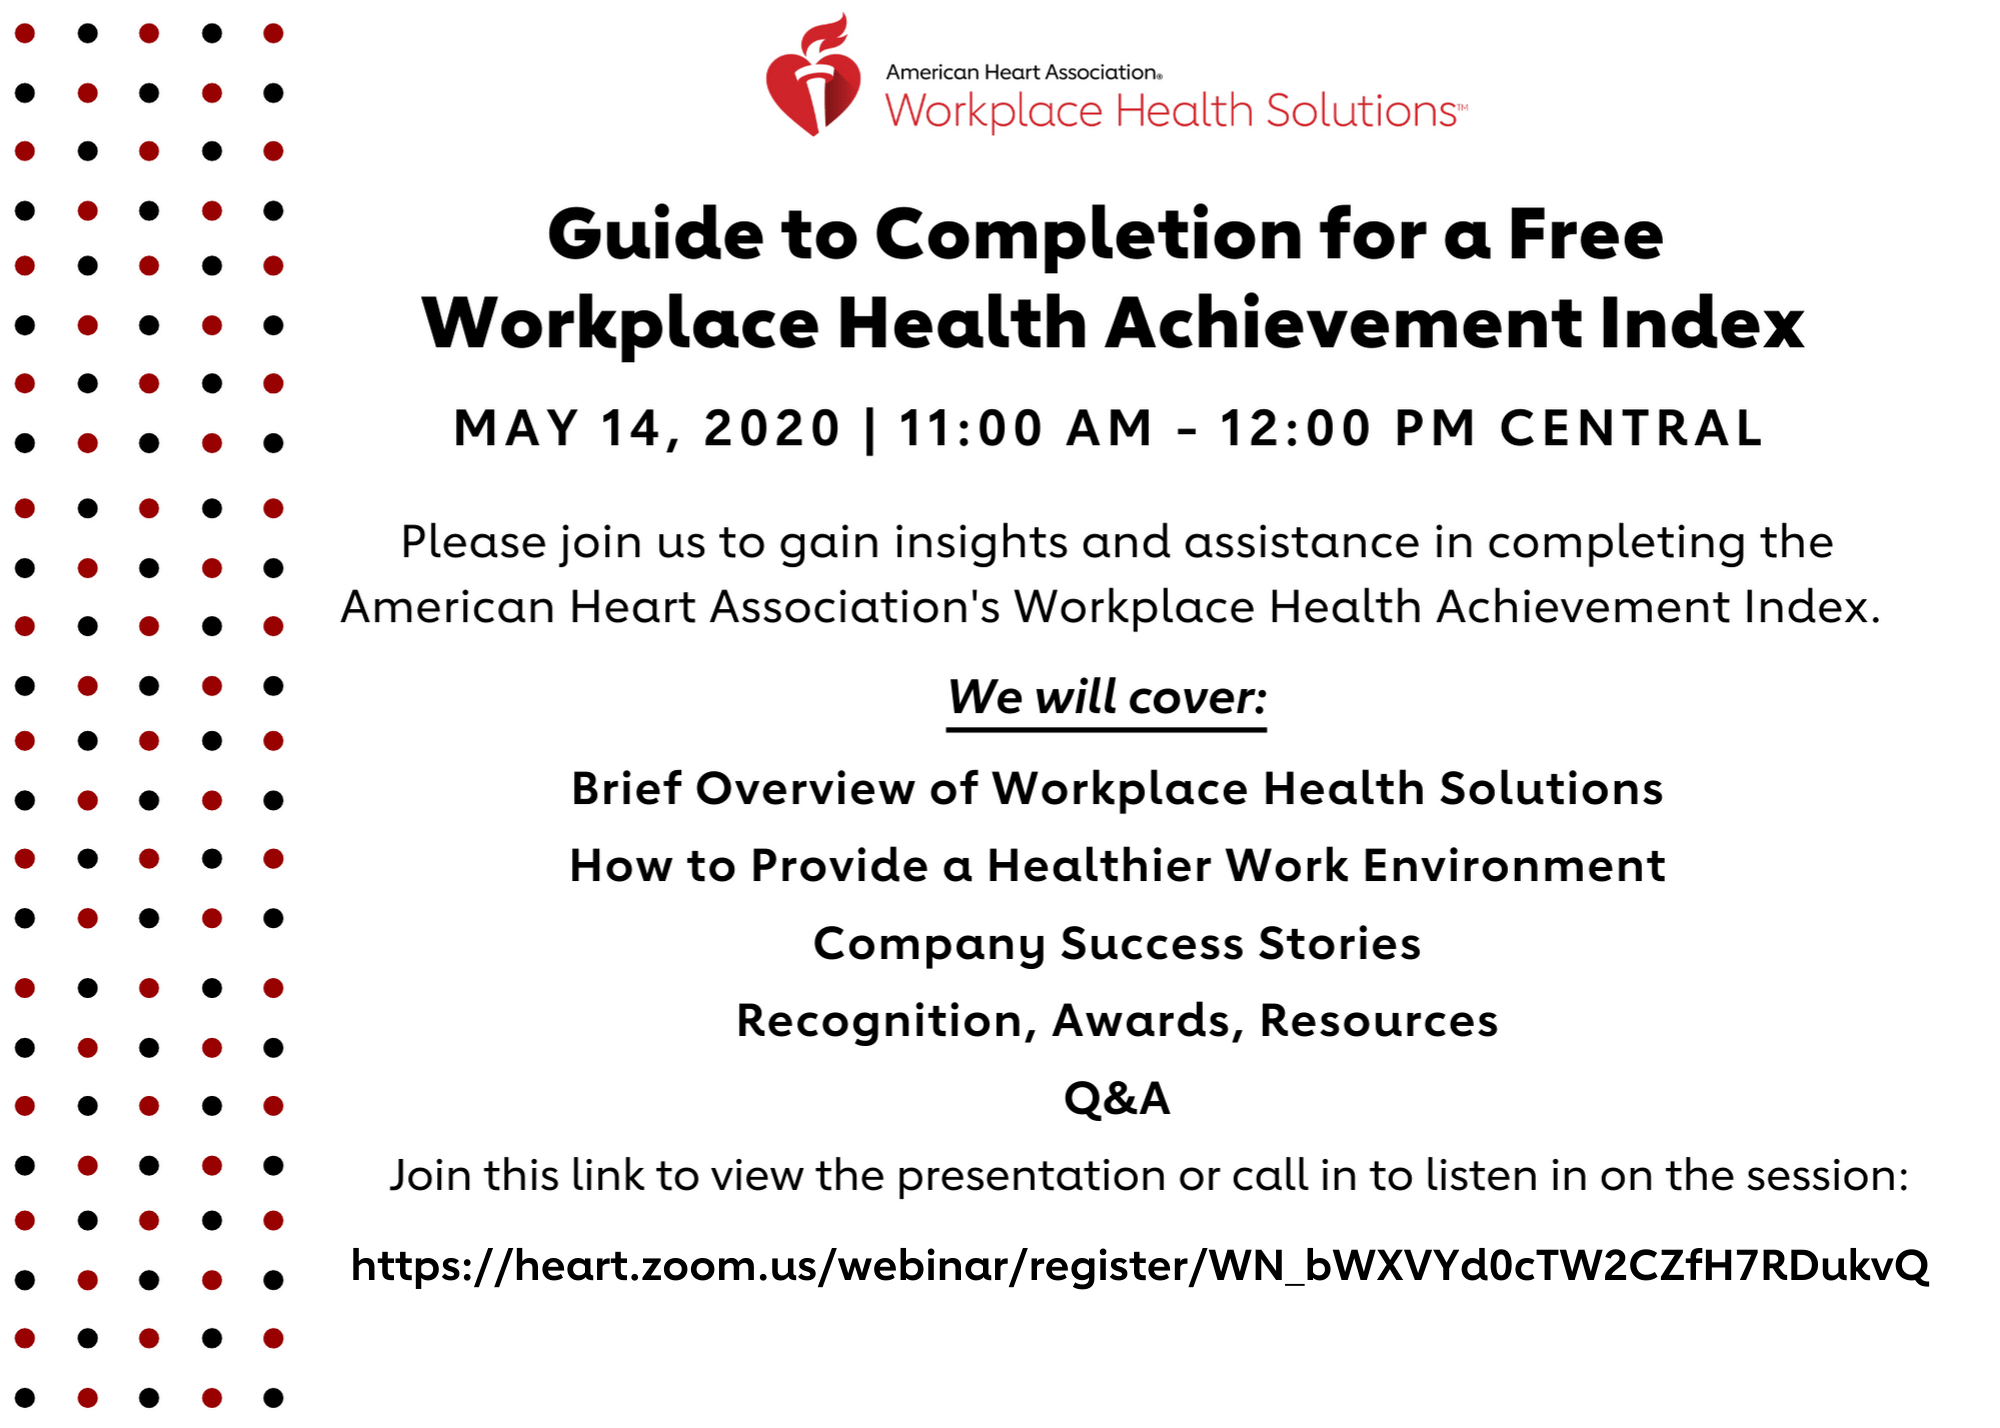 American Heart Association Workplace Index